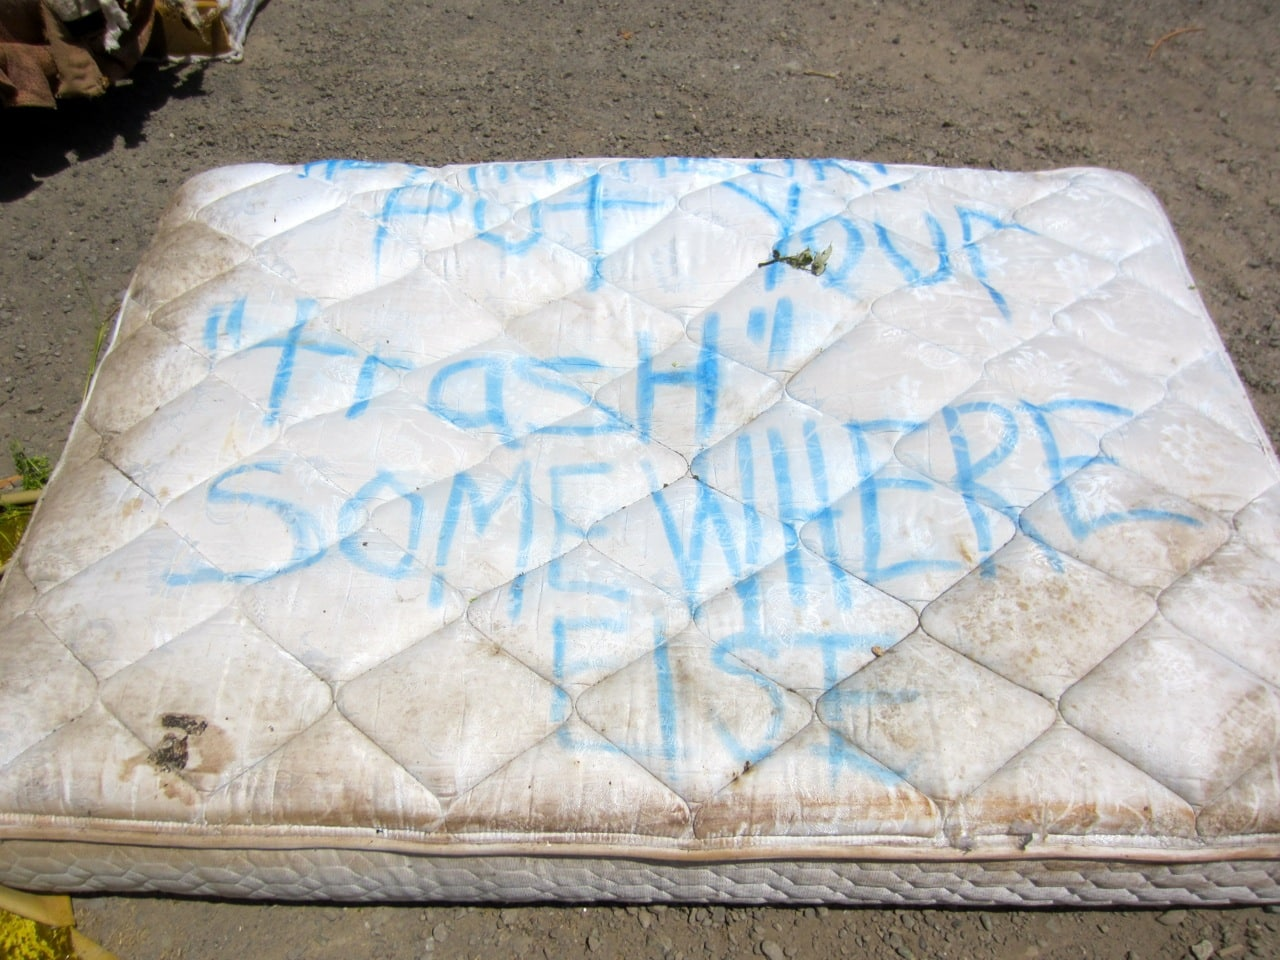 How to get rid of a mattress